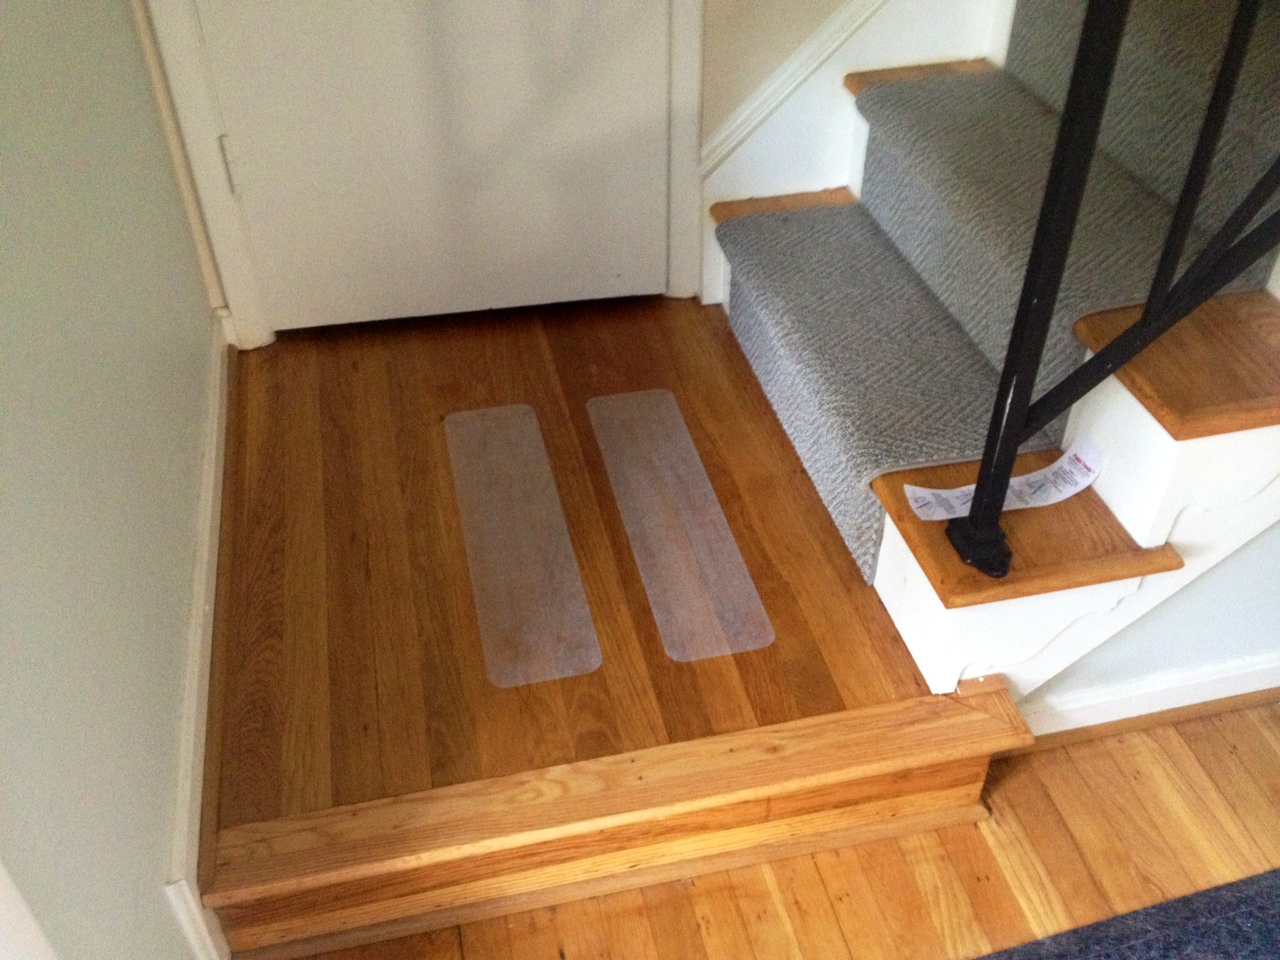 Product Review Puppy Treads For Slippery Surfaces Two Dog Tales